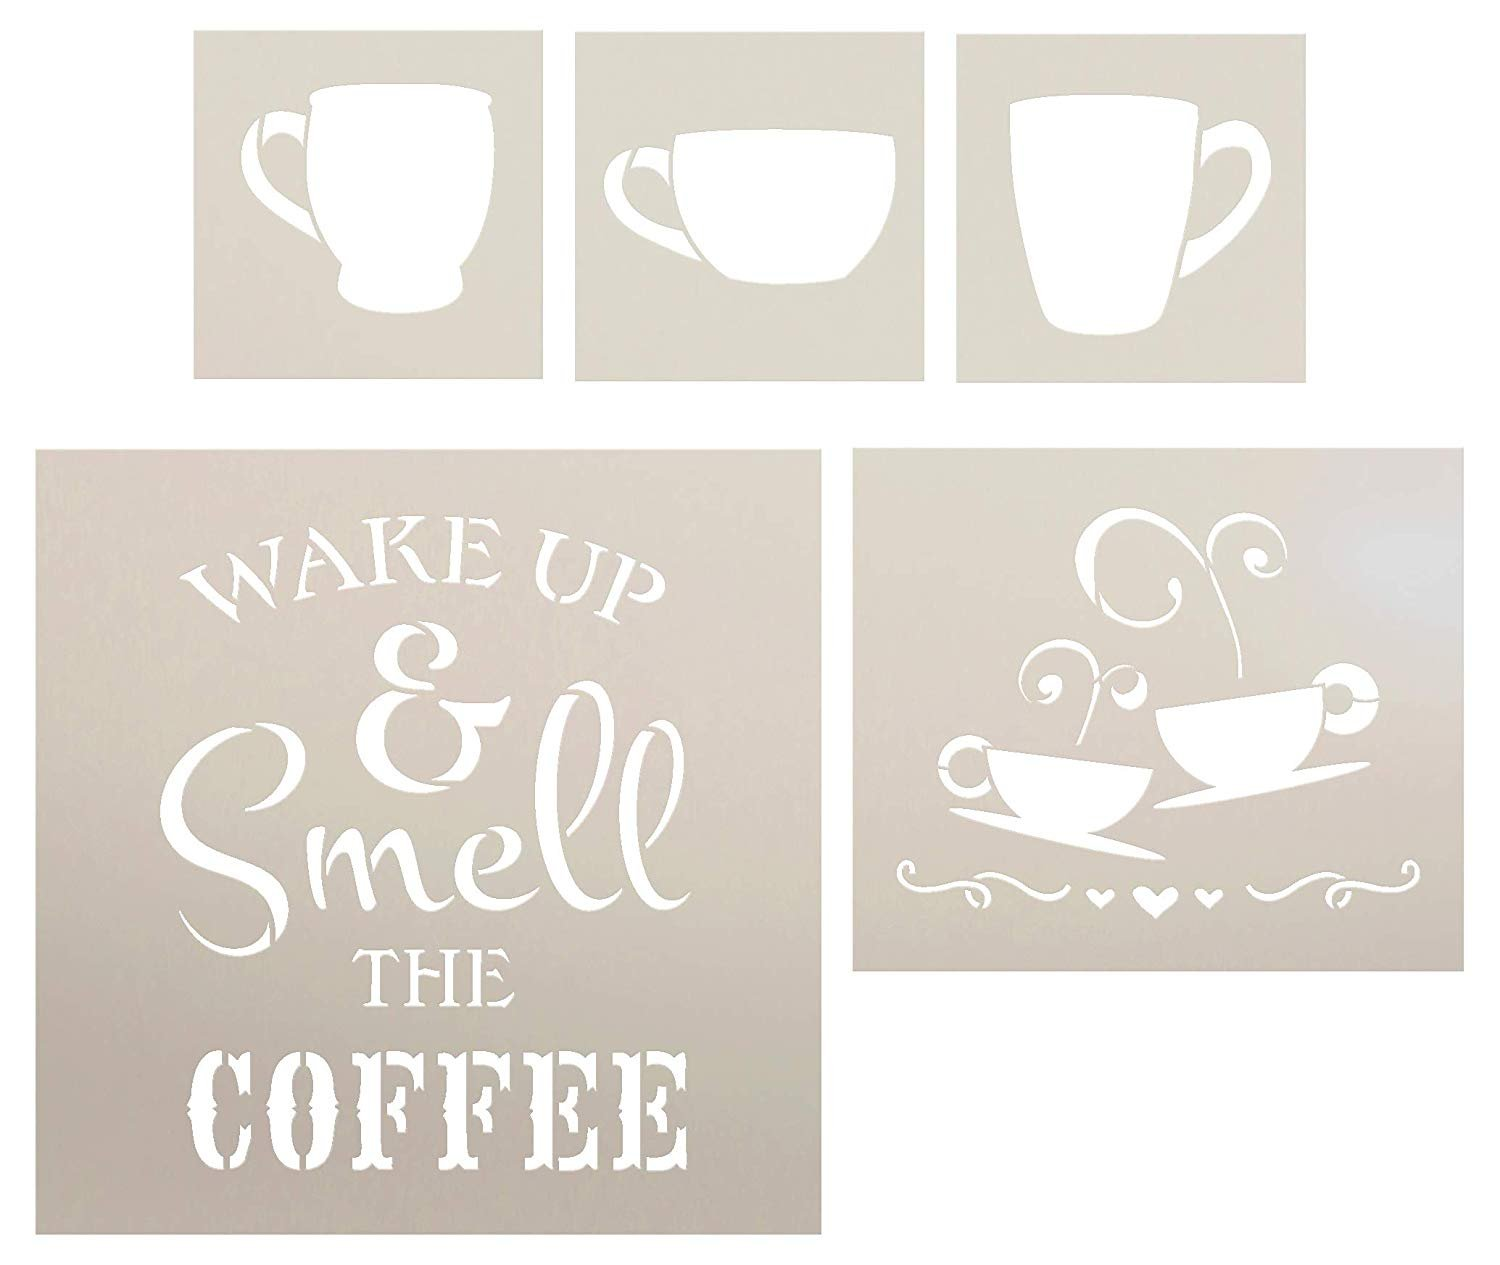 Wake Up and Smell The Coffee with Cups Stencil Set - 5 Piece by StudioR12 | Reusable Mylar Template | Use to Paint Wood Signs - Walls - DIY Modern Farmhouse Decor